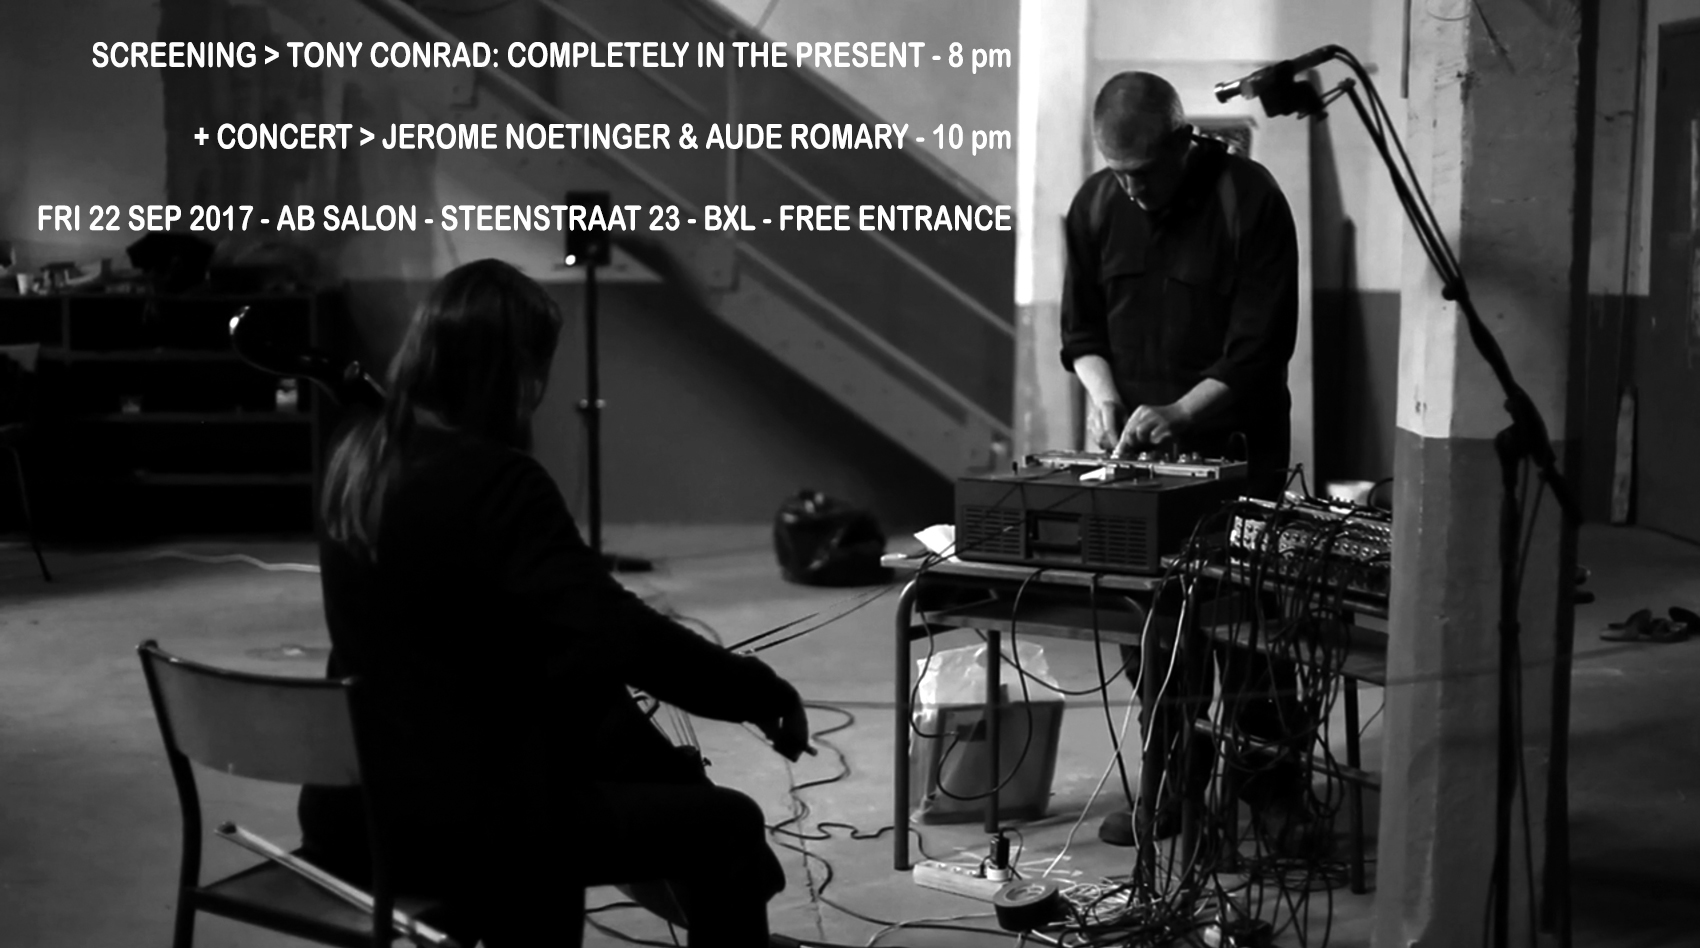 SCREENING TONY CONRAD + CONCERT JEROME NOETINGER – AUDE ROMARY AT AB SALON > GRATIS